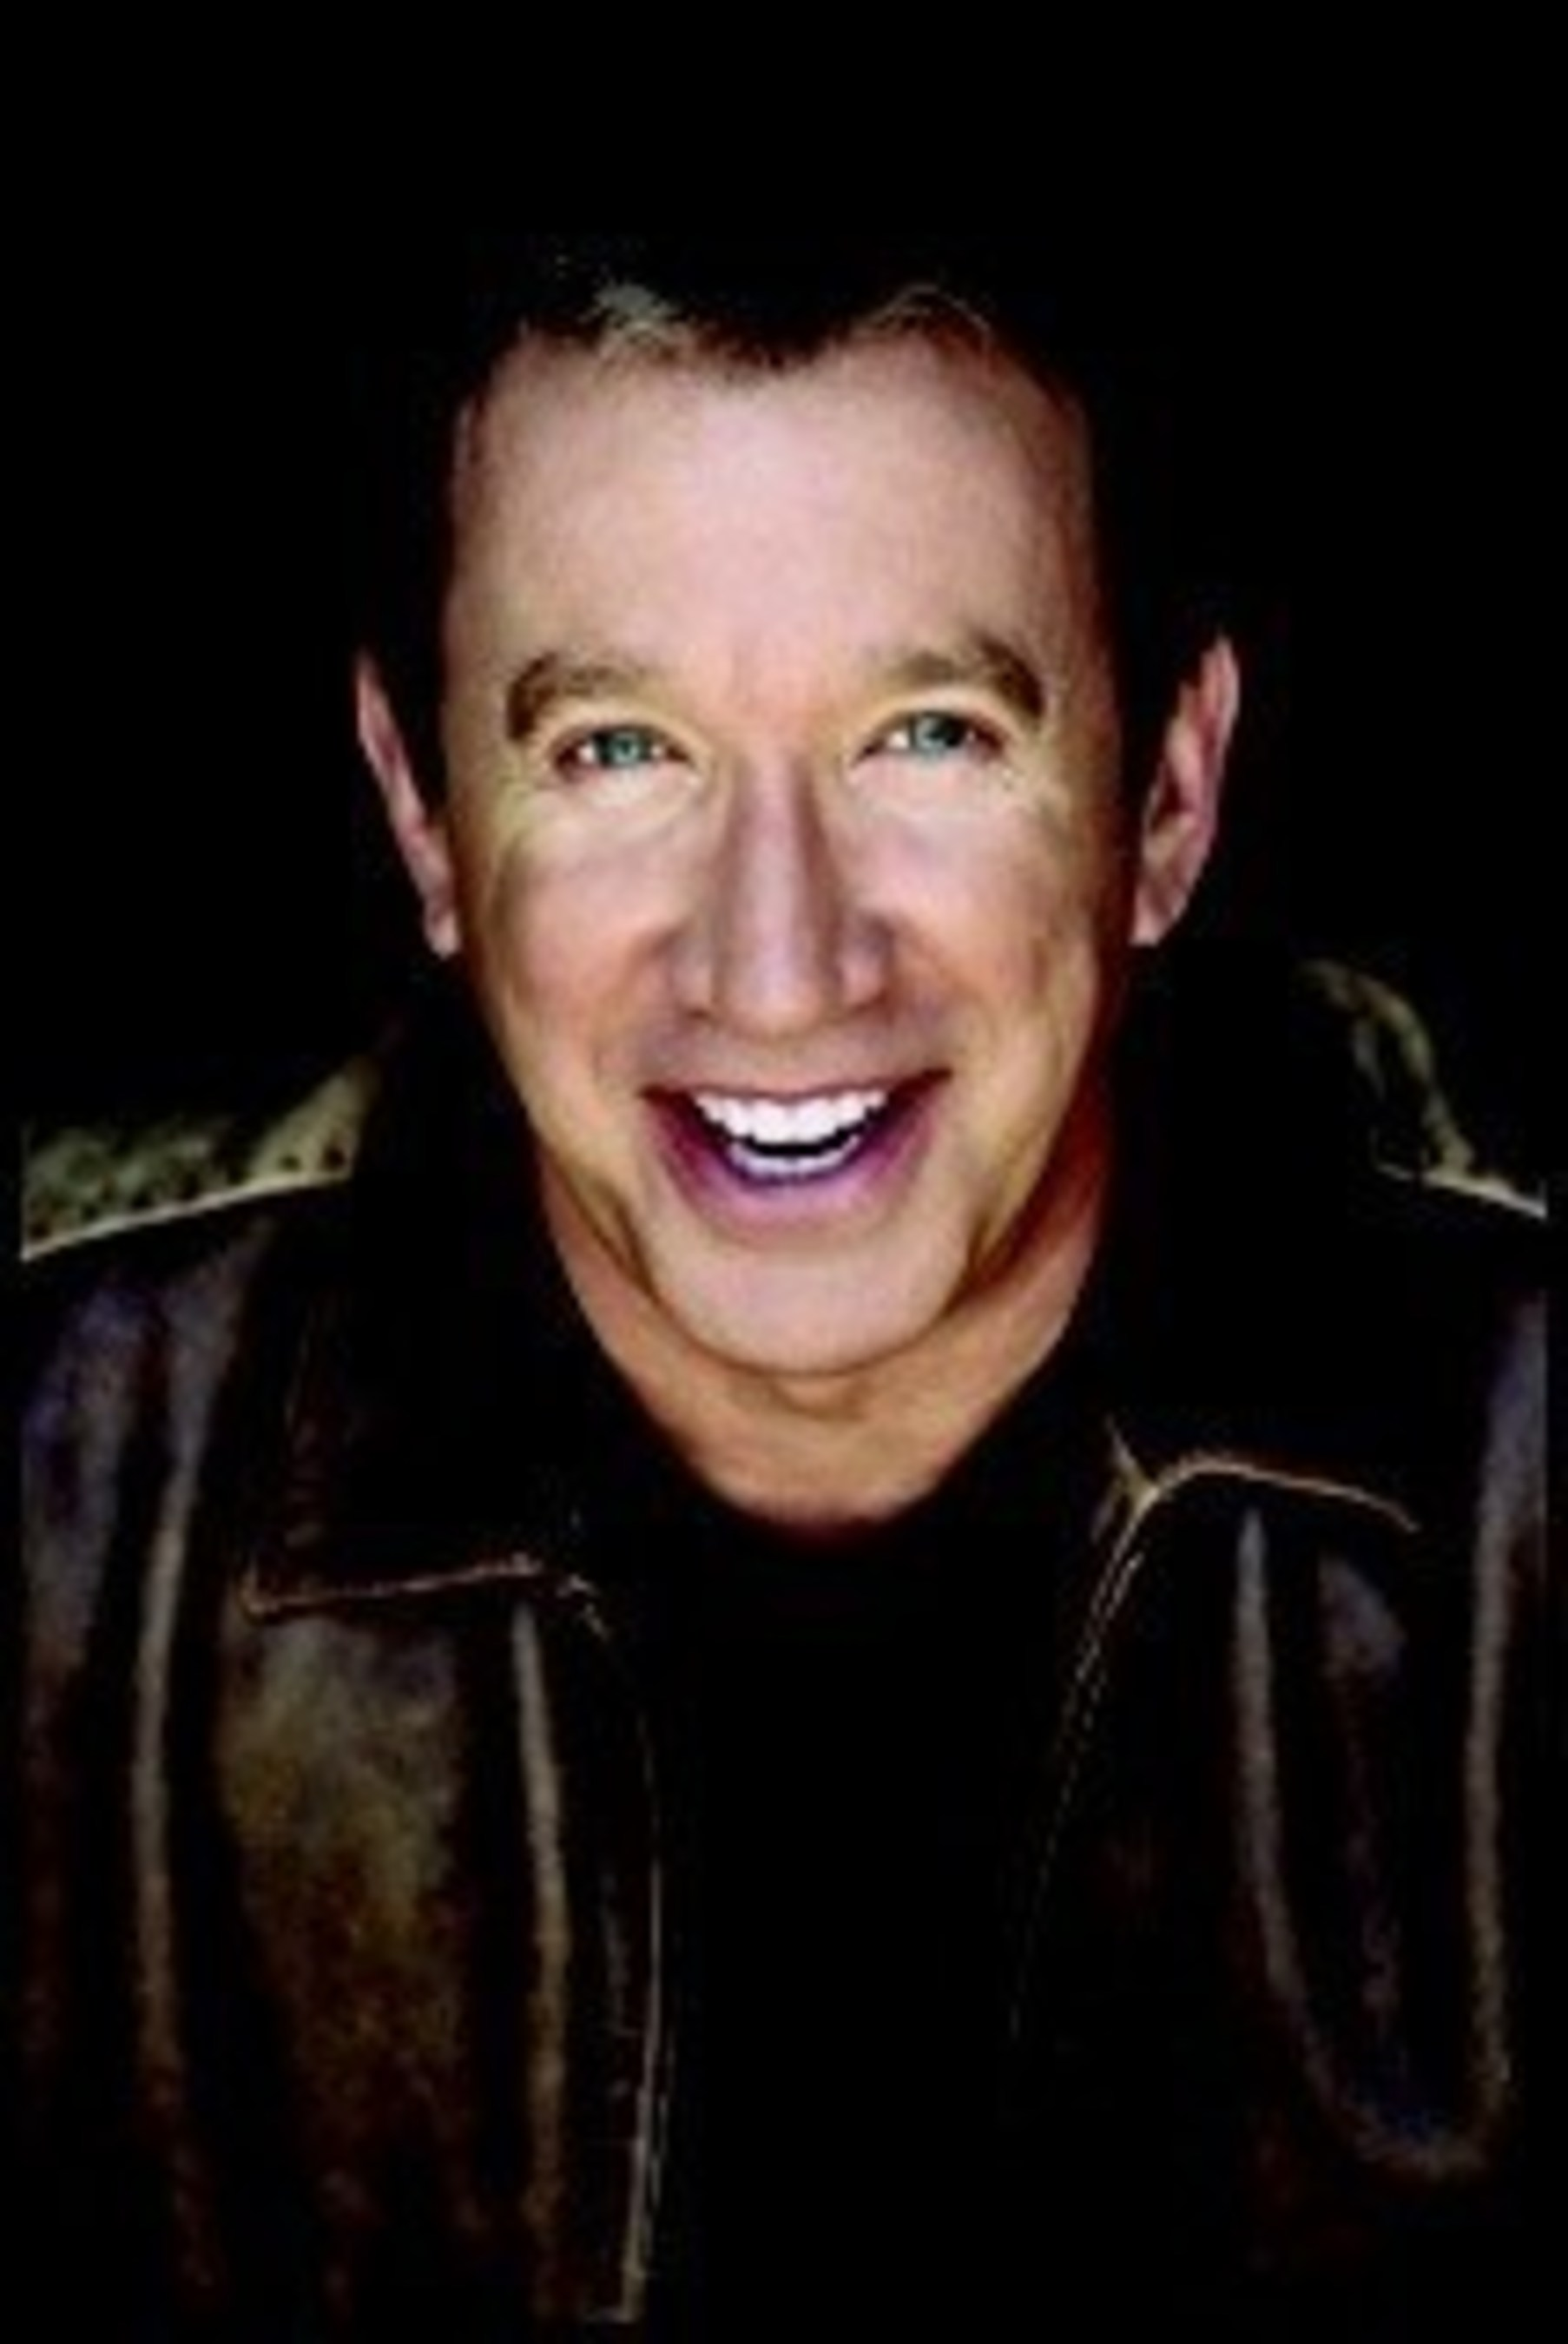 Golden Globe Award-Winning Actor, Comedian And Michigan Native Tim Allen Announced As Grand Marshal For America's Thanksgiving Parade' Presented By Art Van